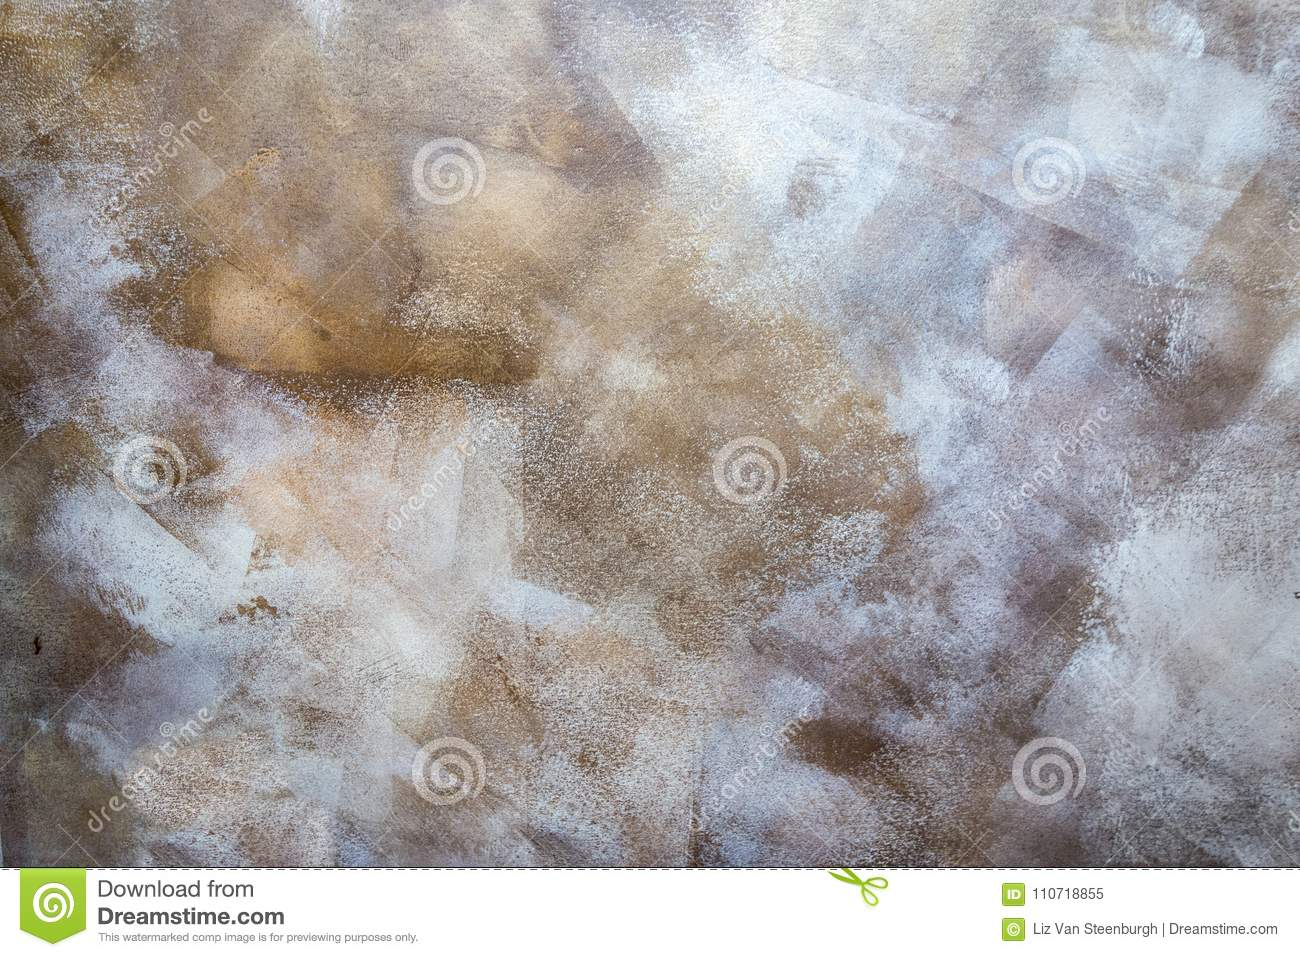 96 729 Hand Painted Photos Free Royalty Free Stock Photos From Dreamstime